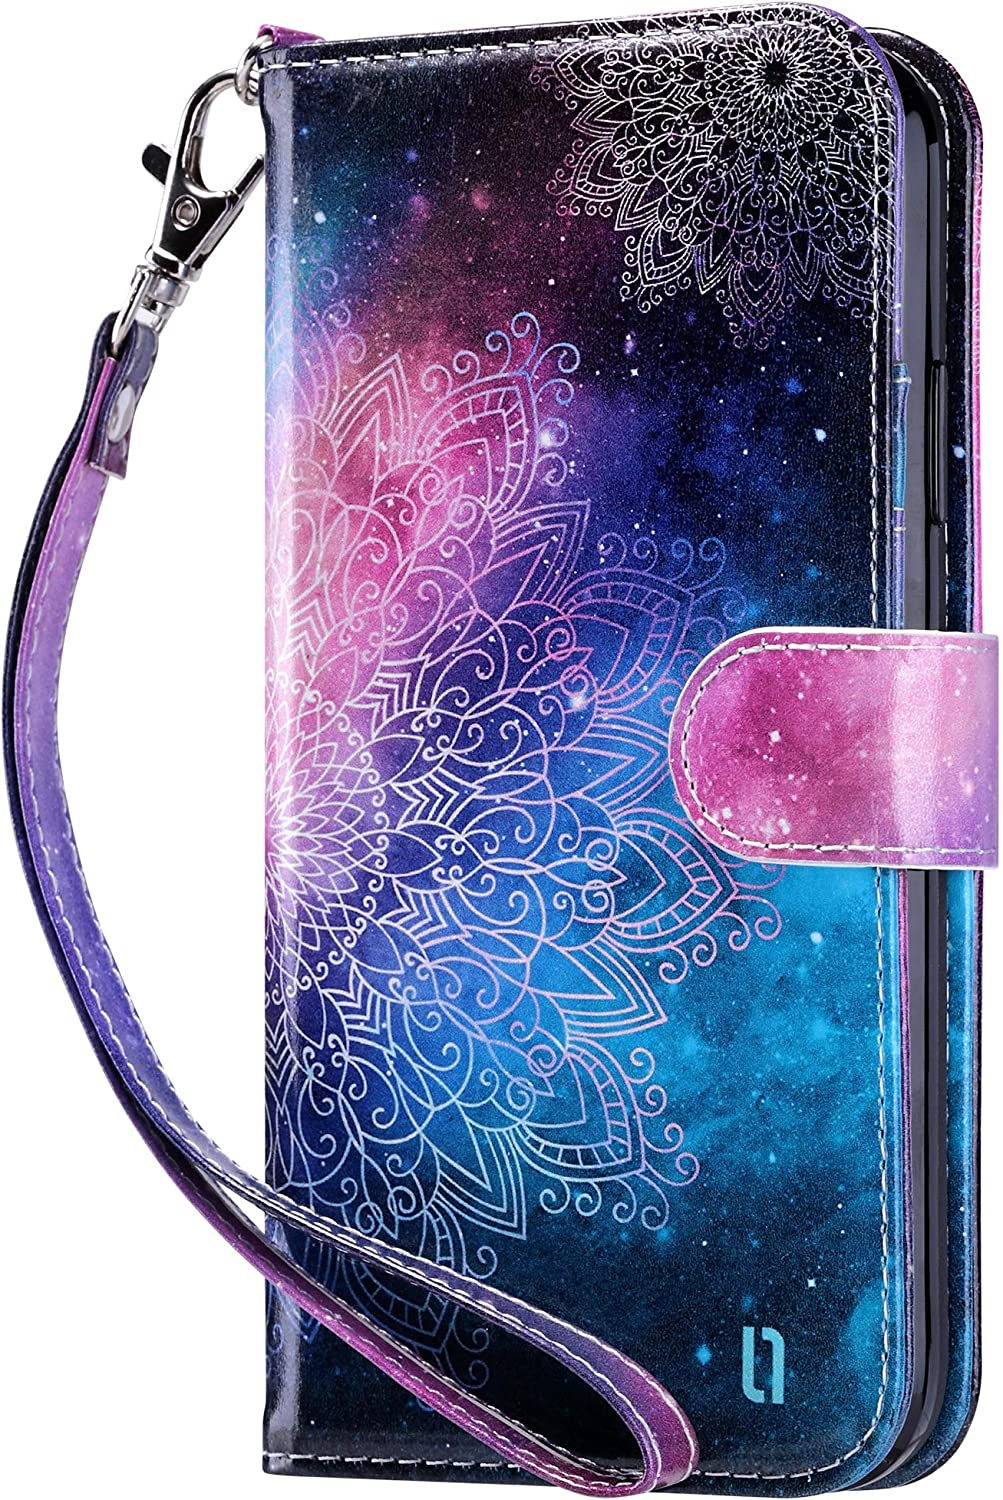 ULAK iPhone 11 Wallet Case iPhone 11 Case with Card Holder PU Leather Flip Cover with Kickstand Magnetic Closure TPU Shockproof Interior Protective Case for iPhone 11 6.1 Inch Mandala Floral